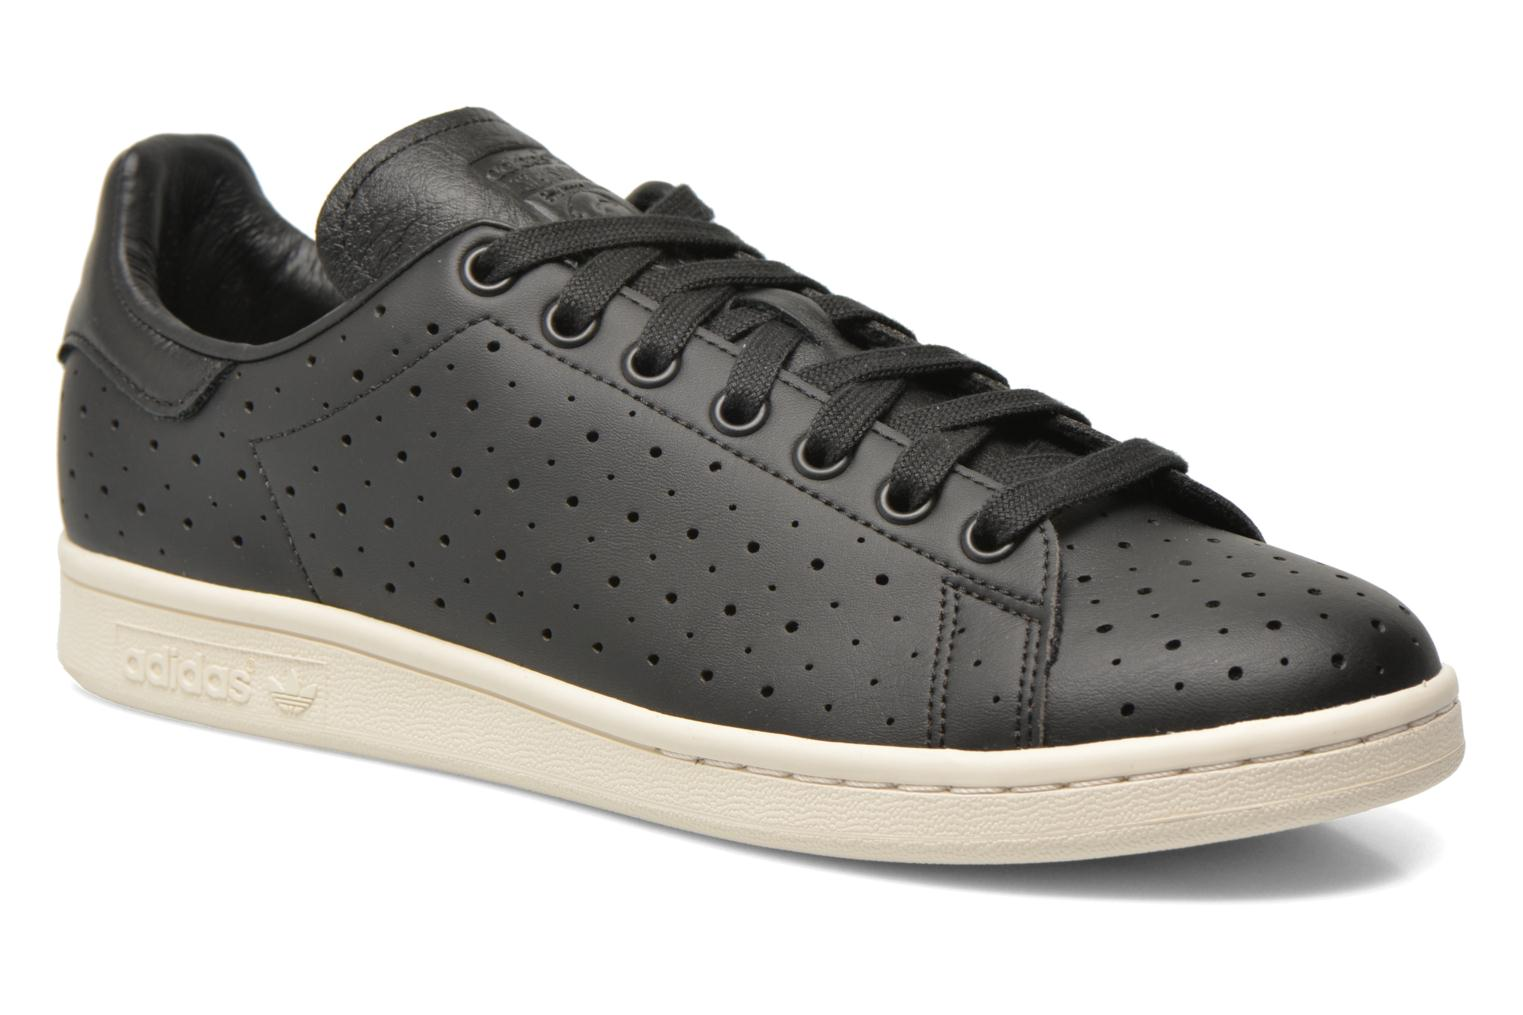 Stan Smith Noir/Noir/Blacra